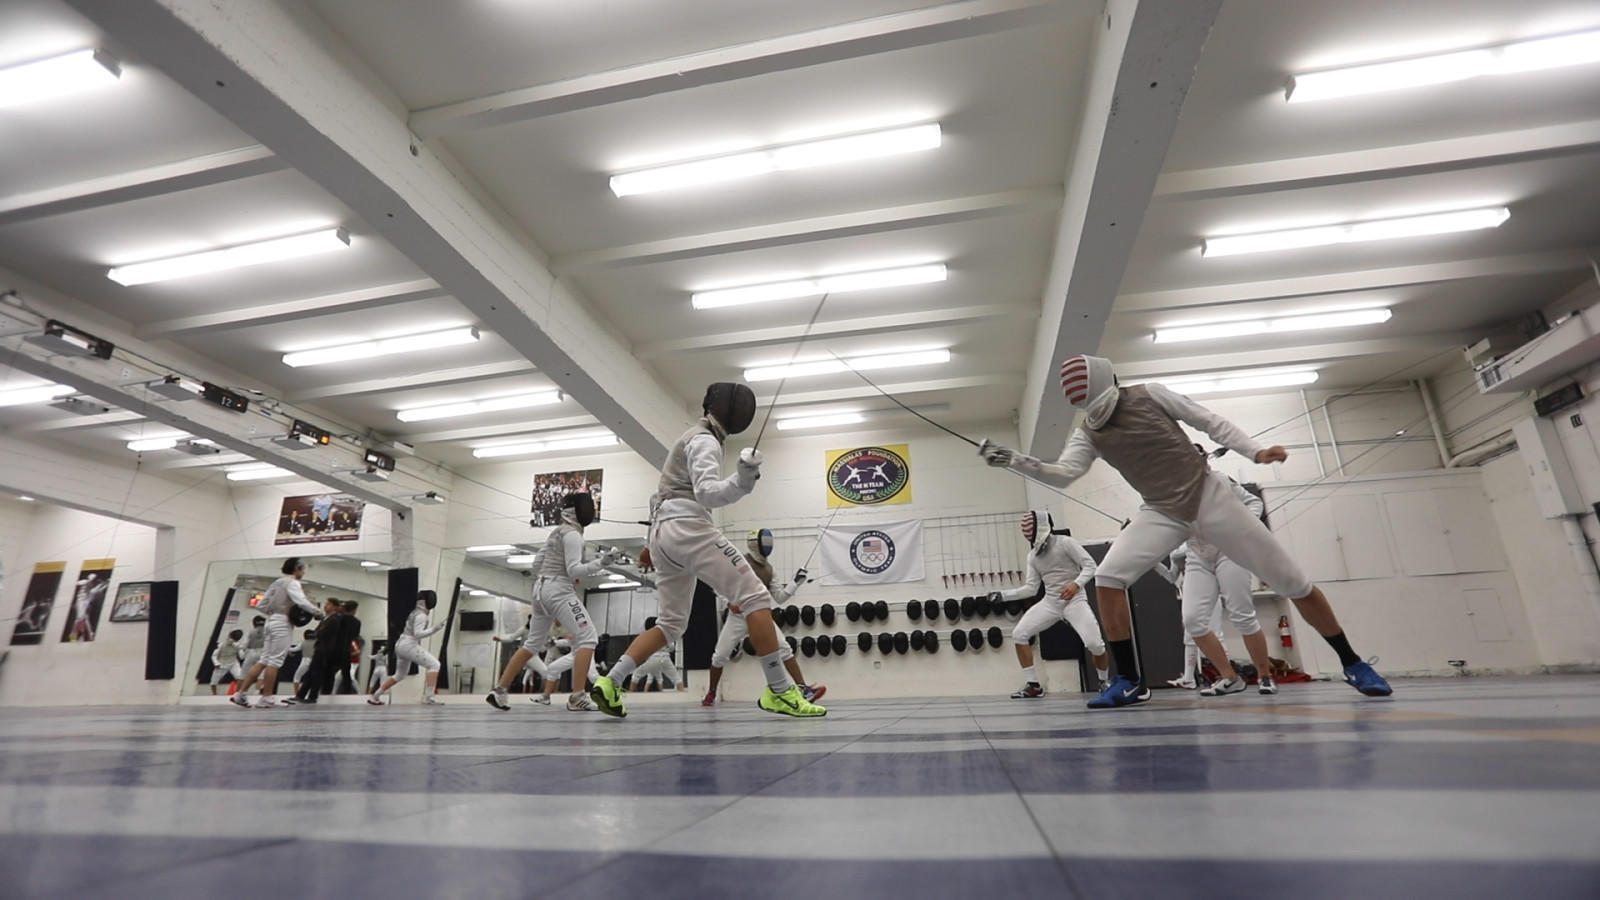 Greg Massialas is patriarch of America's first family of fencing. His target: gold